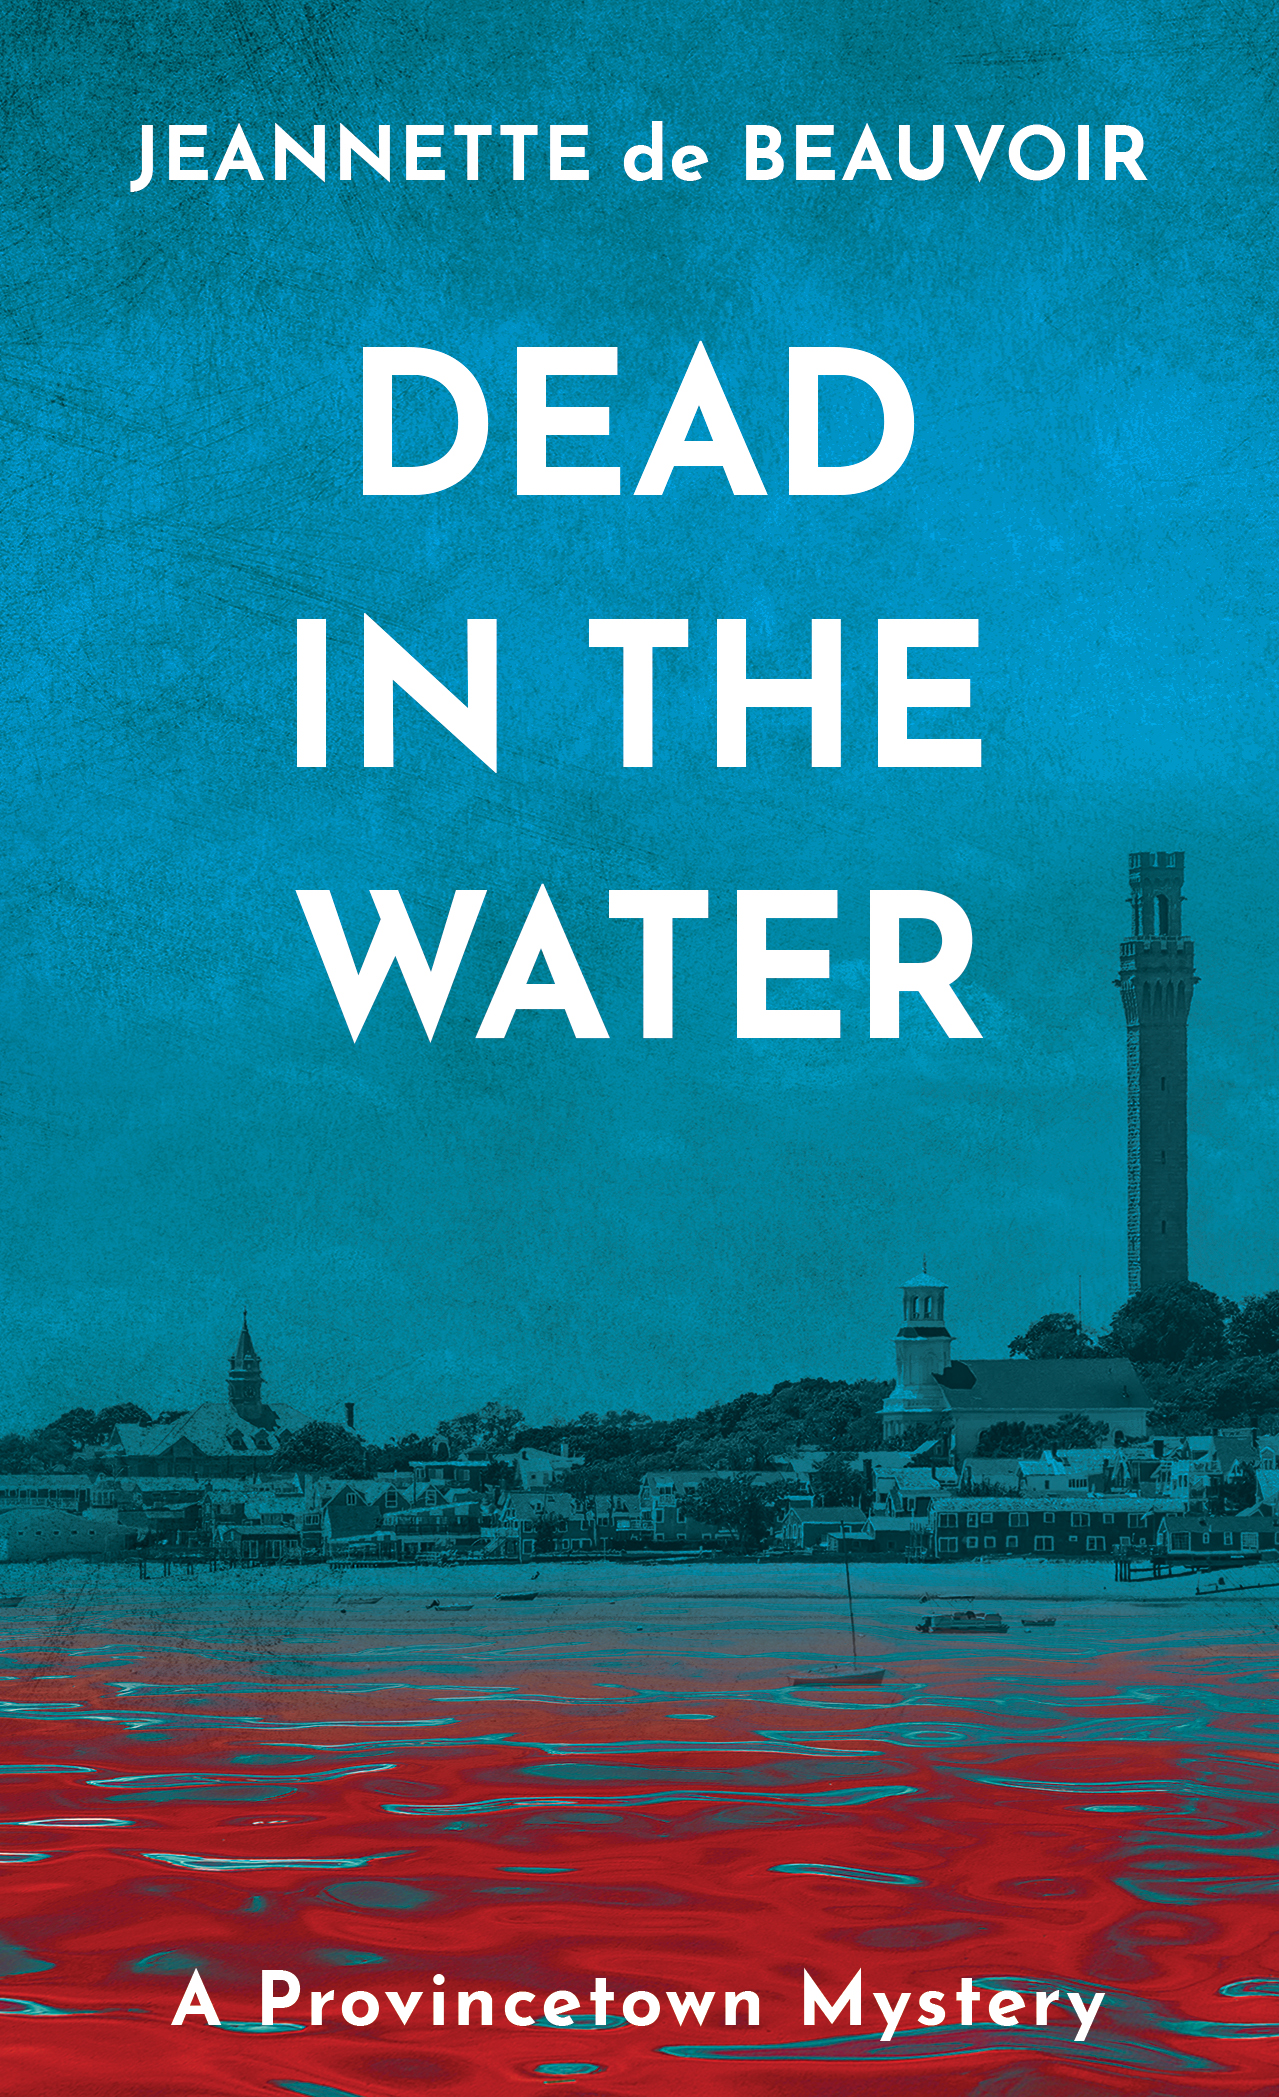 DEAD IN THE WATER - JBeauvoir